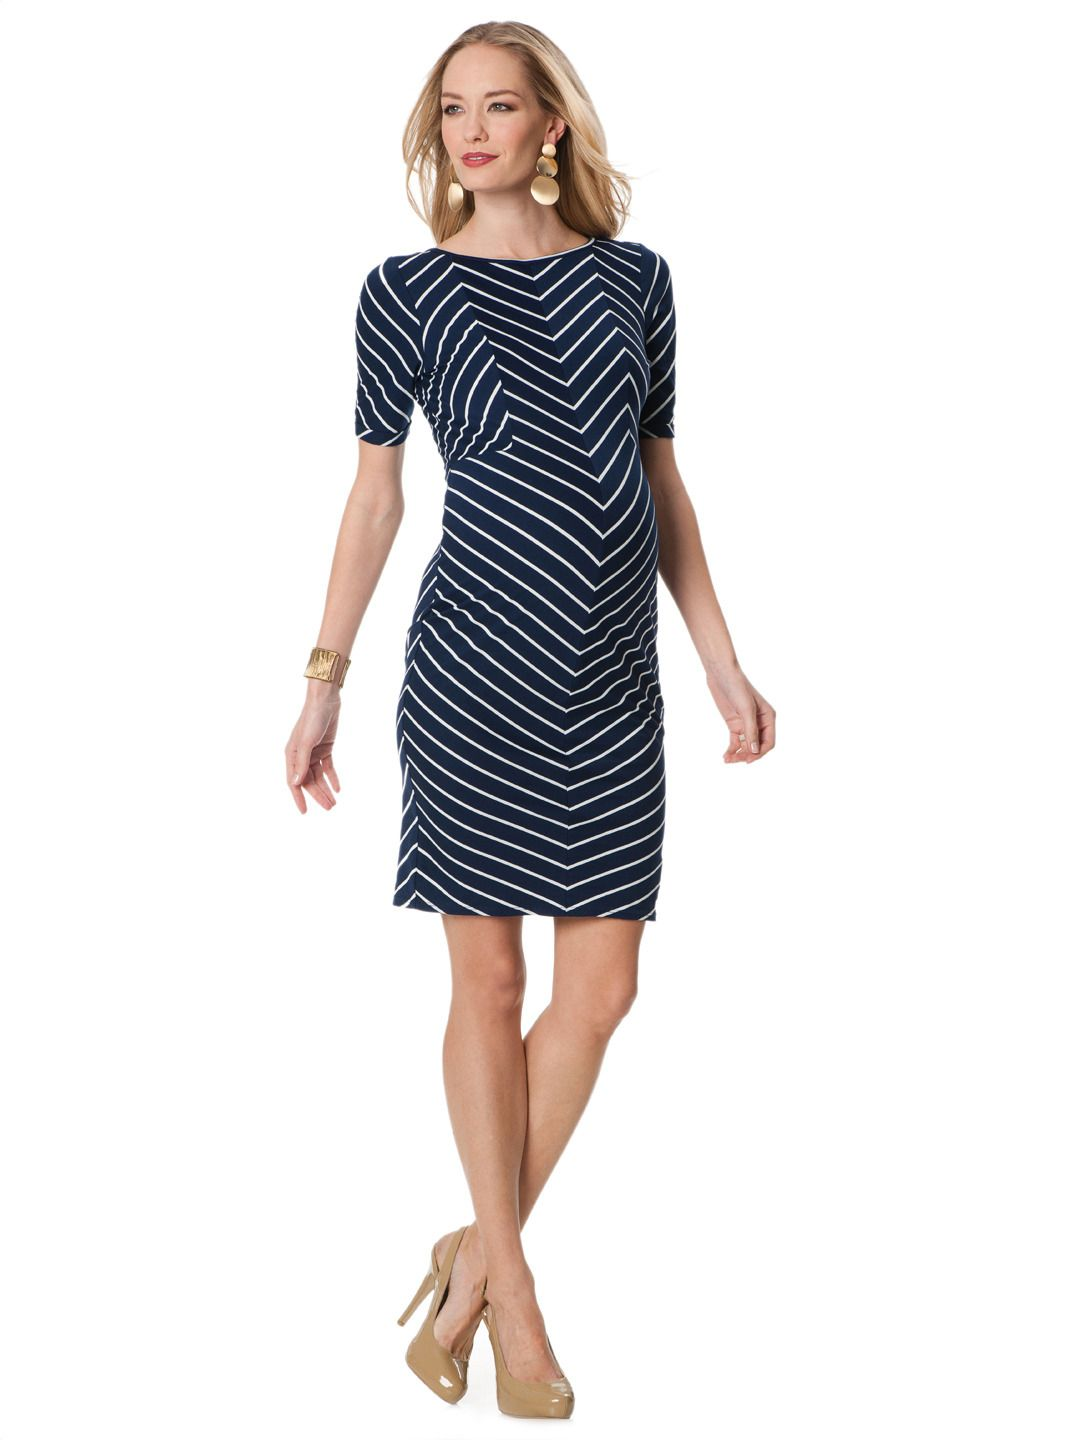 Chevron maternity dress dress kidsbaby maternity bags